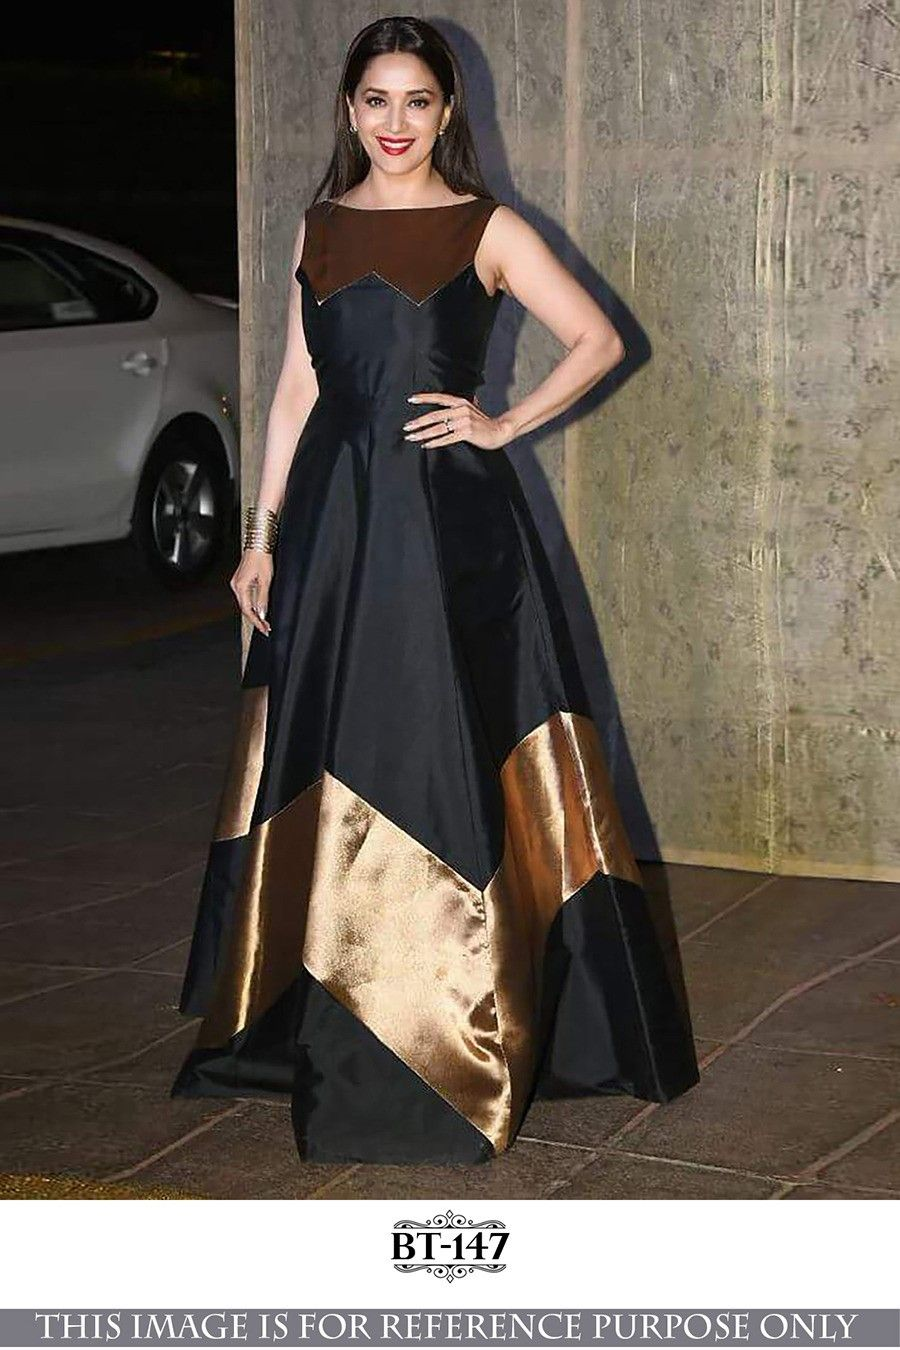 Bollywood Style - Madhuri Dixit In Black Fancy Gown - BT-147 ...